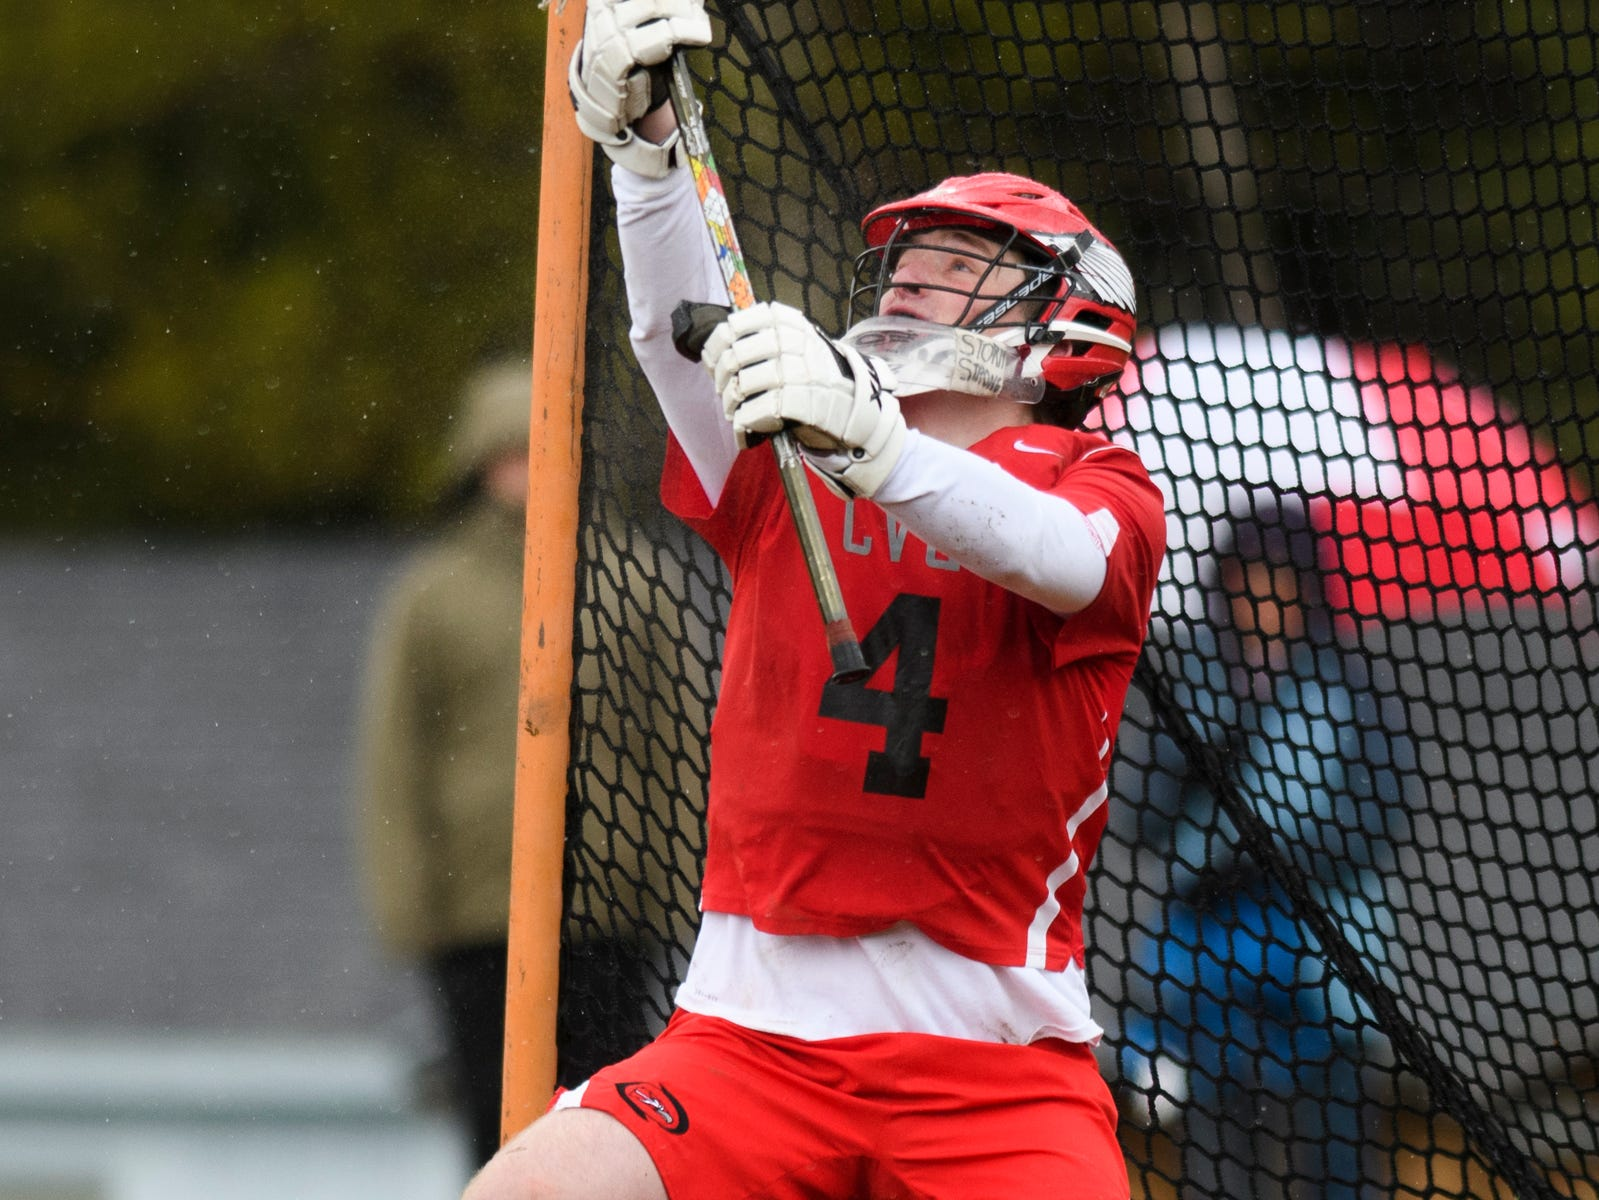 CVU goalie Bobby Spencer (4) makes a save during the boys lacrosse game between the Champlain Valley Union Redhawks and the Mount Mansfield Cougars at MMU High School on Tuesday afternoon May 14, 2019 in Jericho, Vermont.